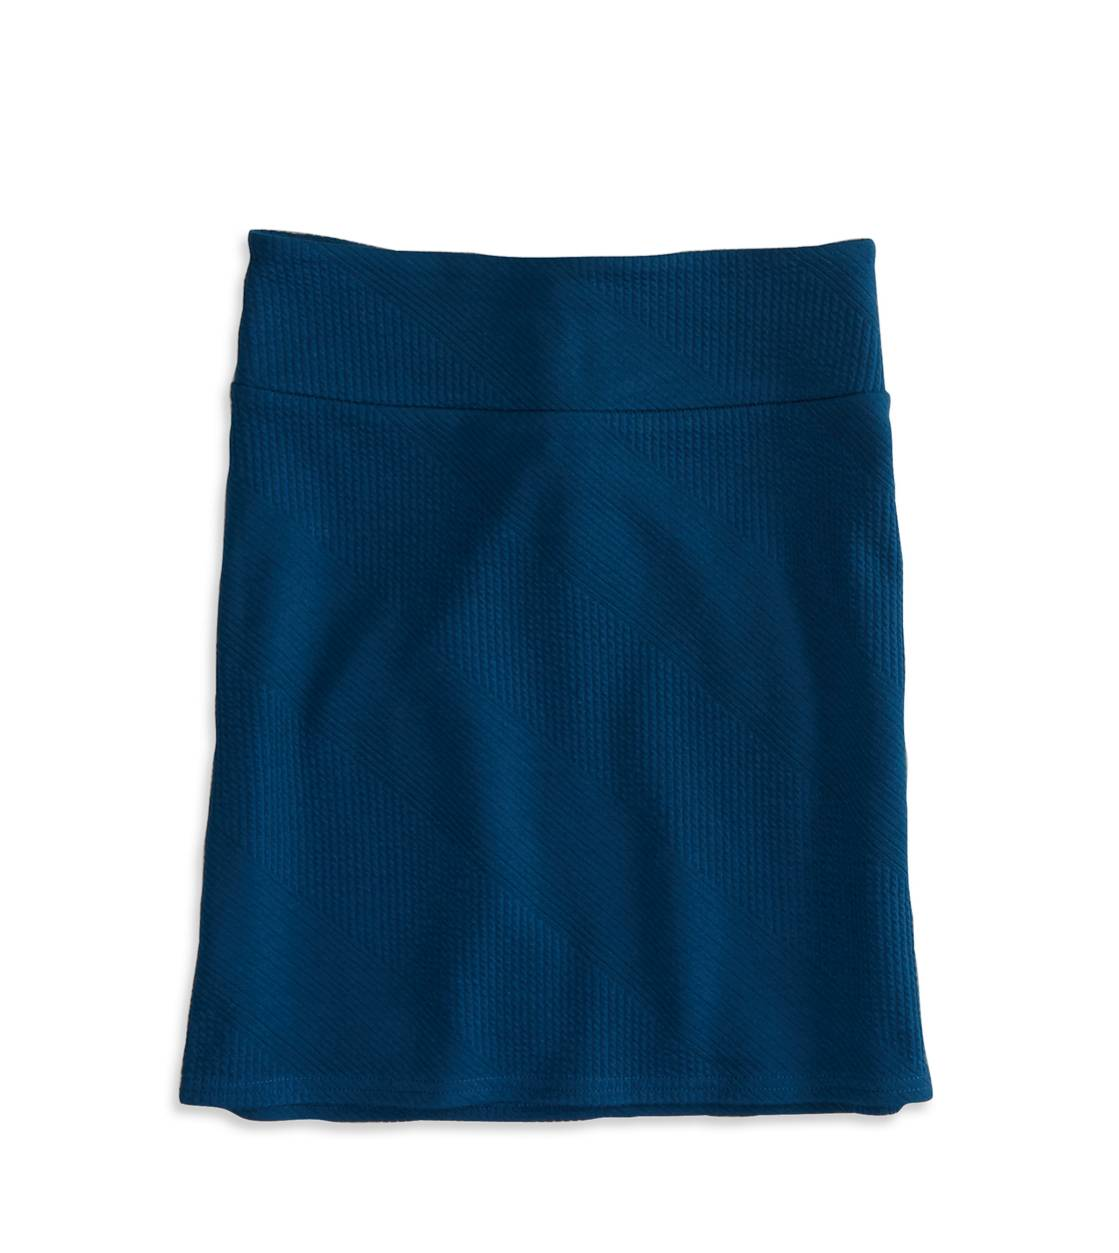 Poseidon Blue AE High-Rise Ribbed Pencil Skirt.